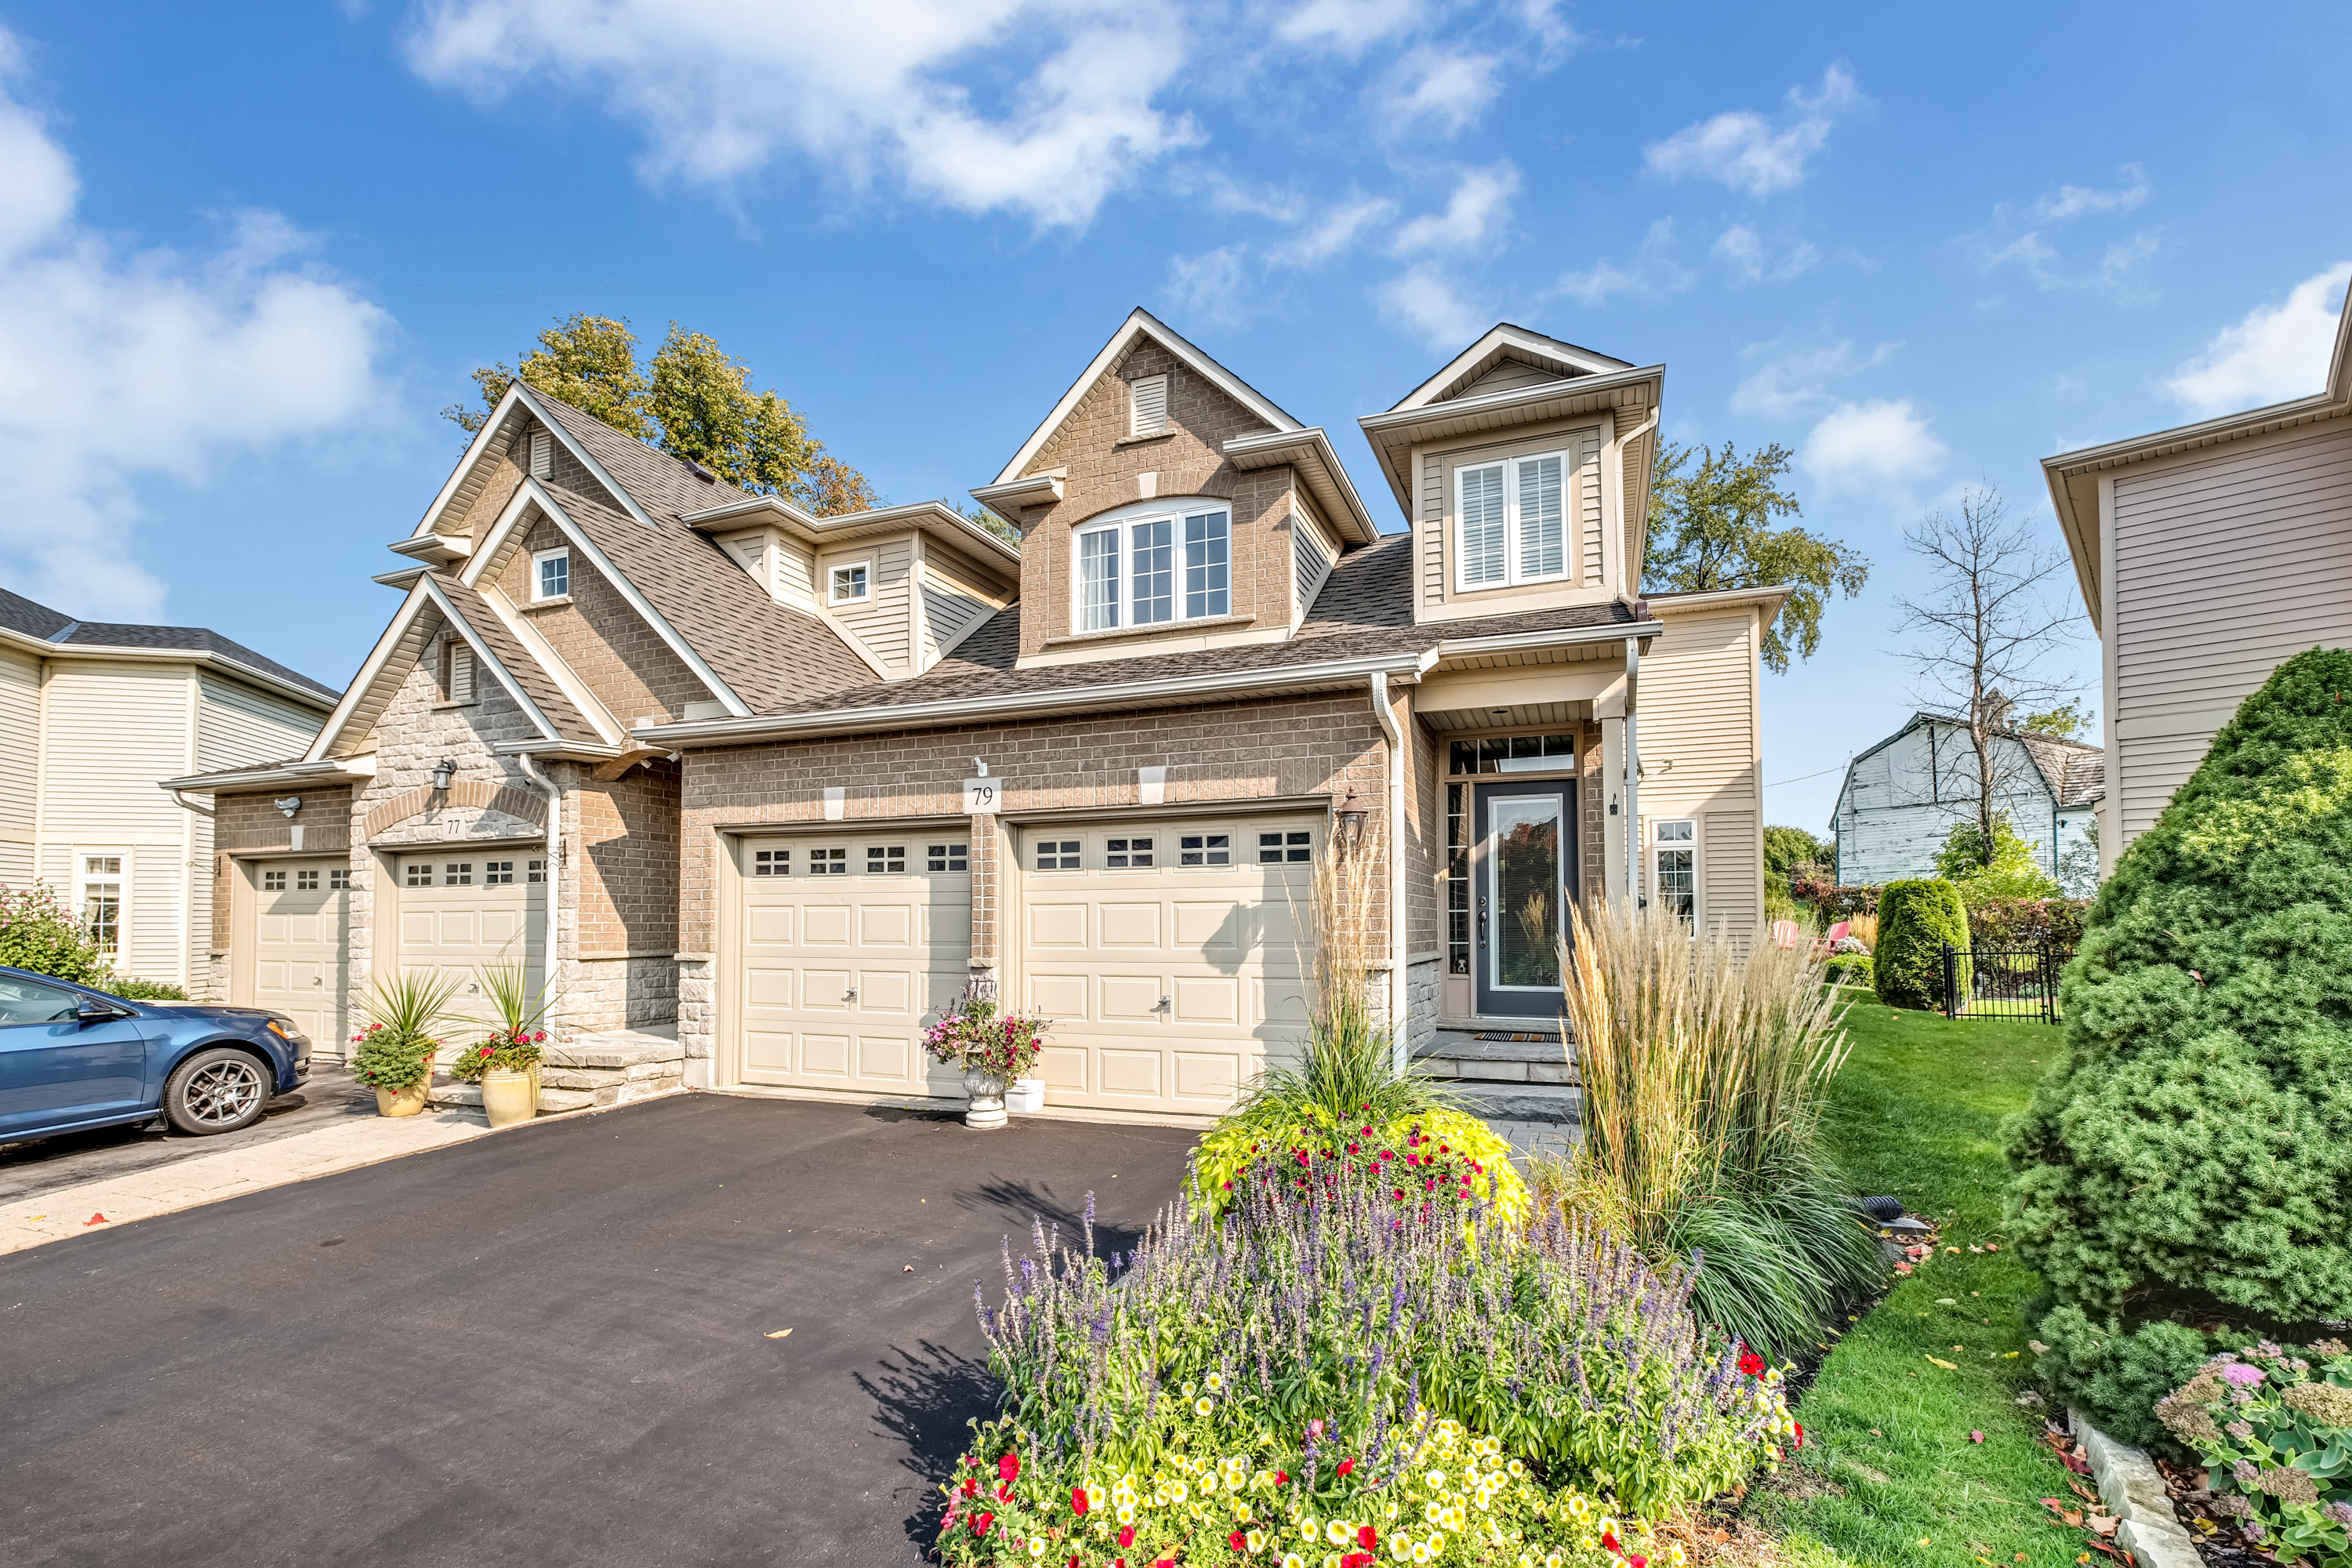 79-Goldenview-Waterdown-High-Res-2